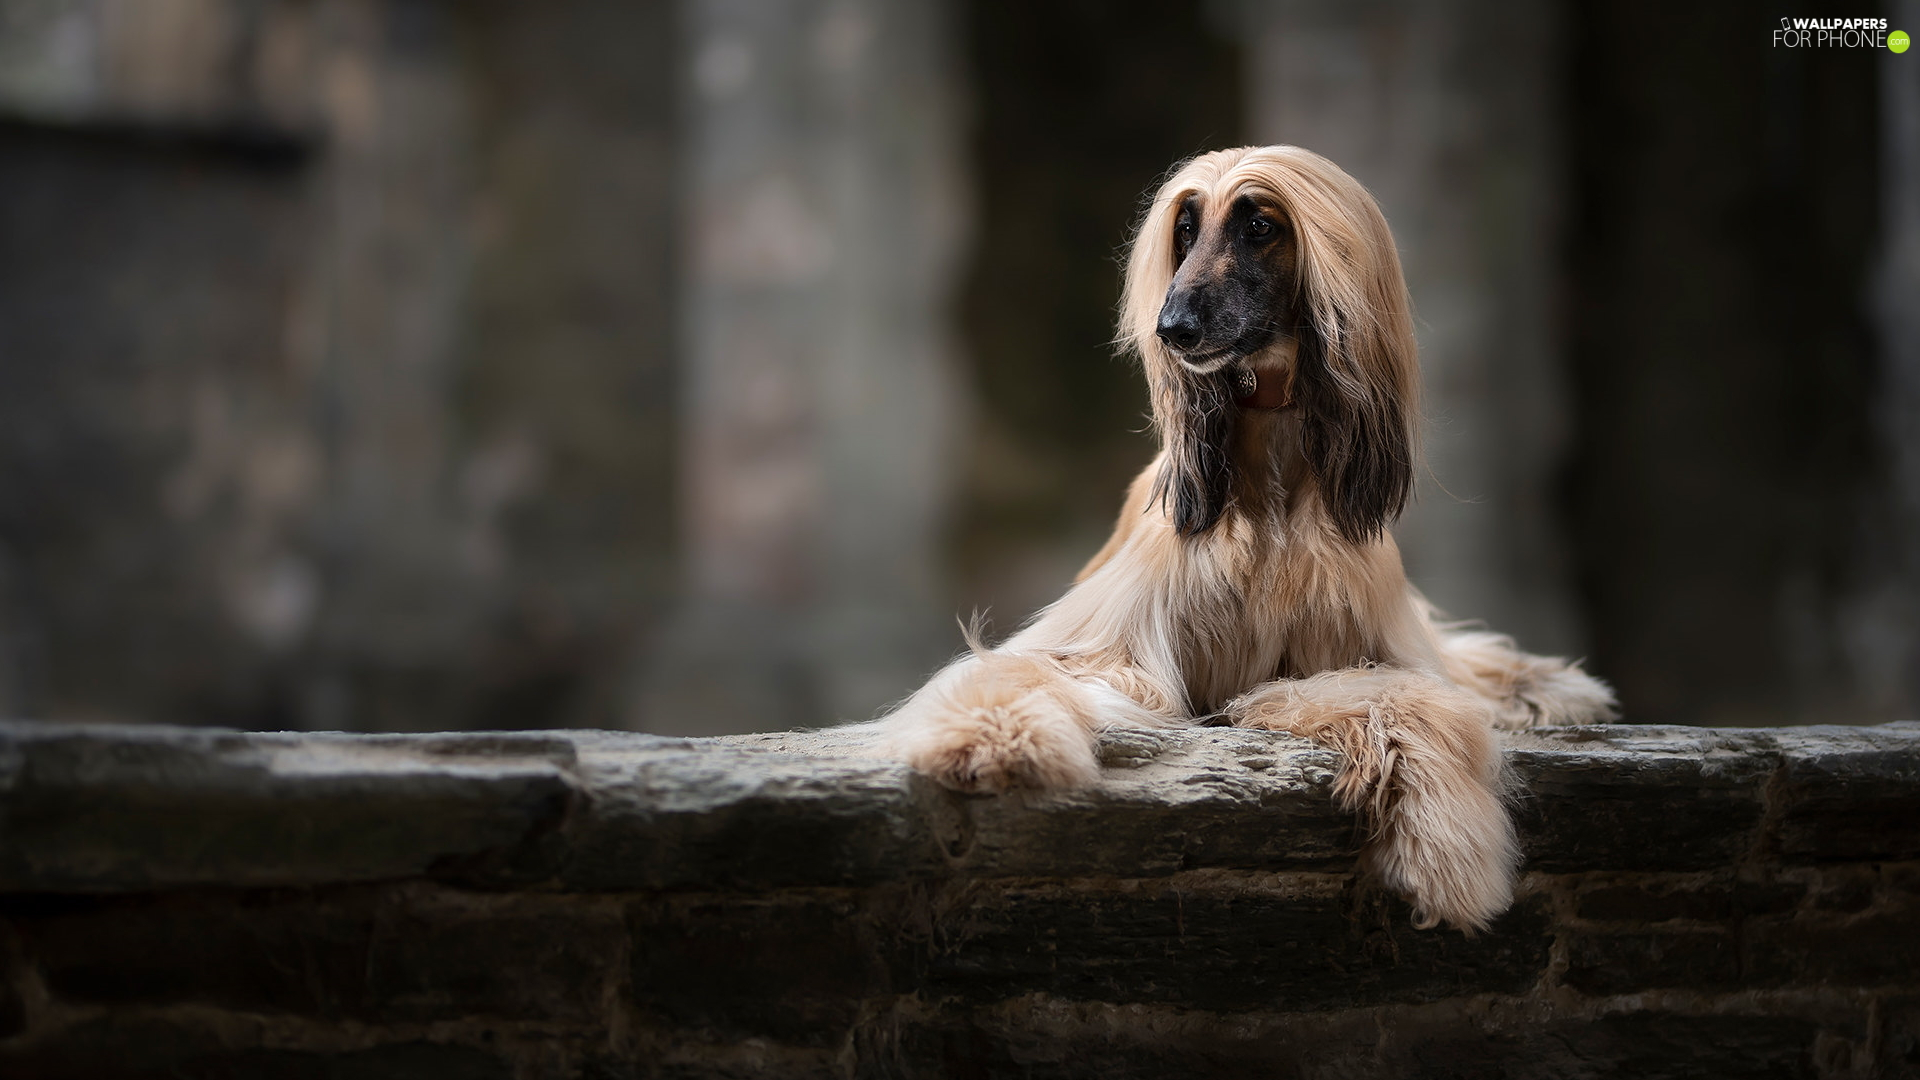 ledge, dog, Afghan Hound